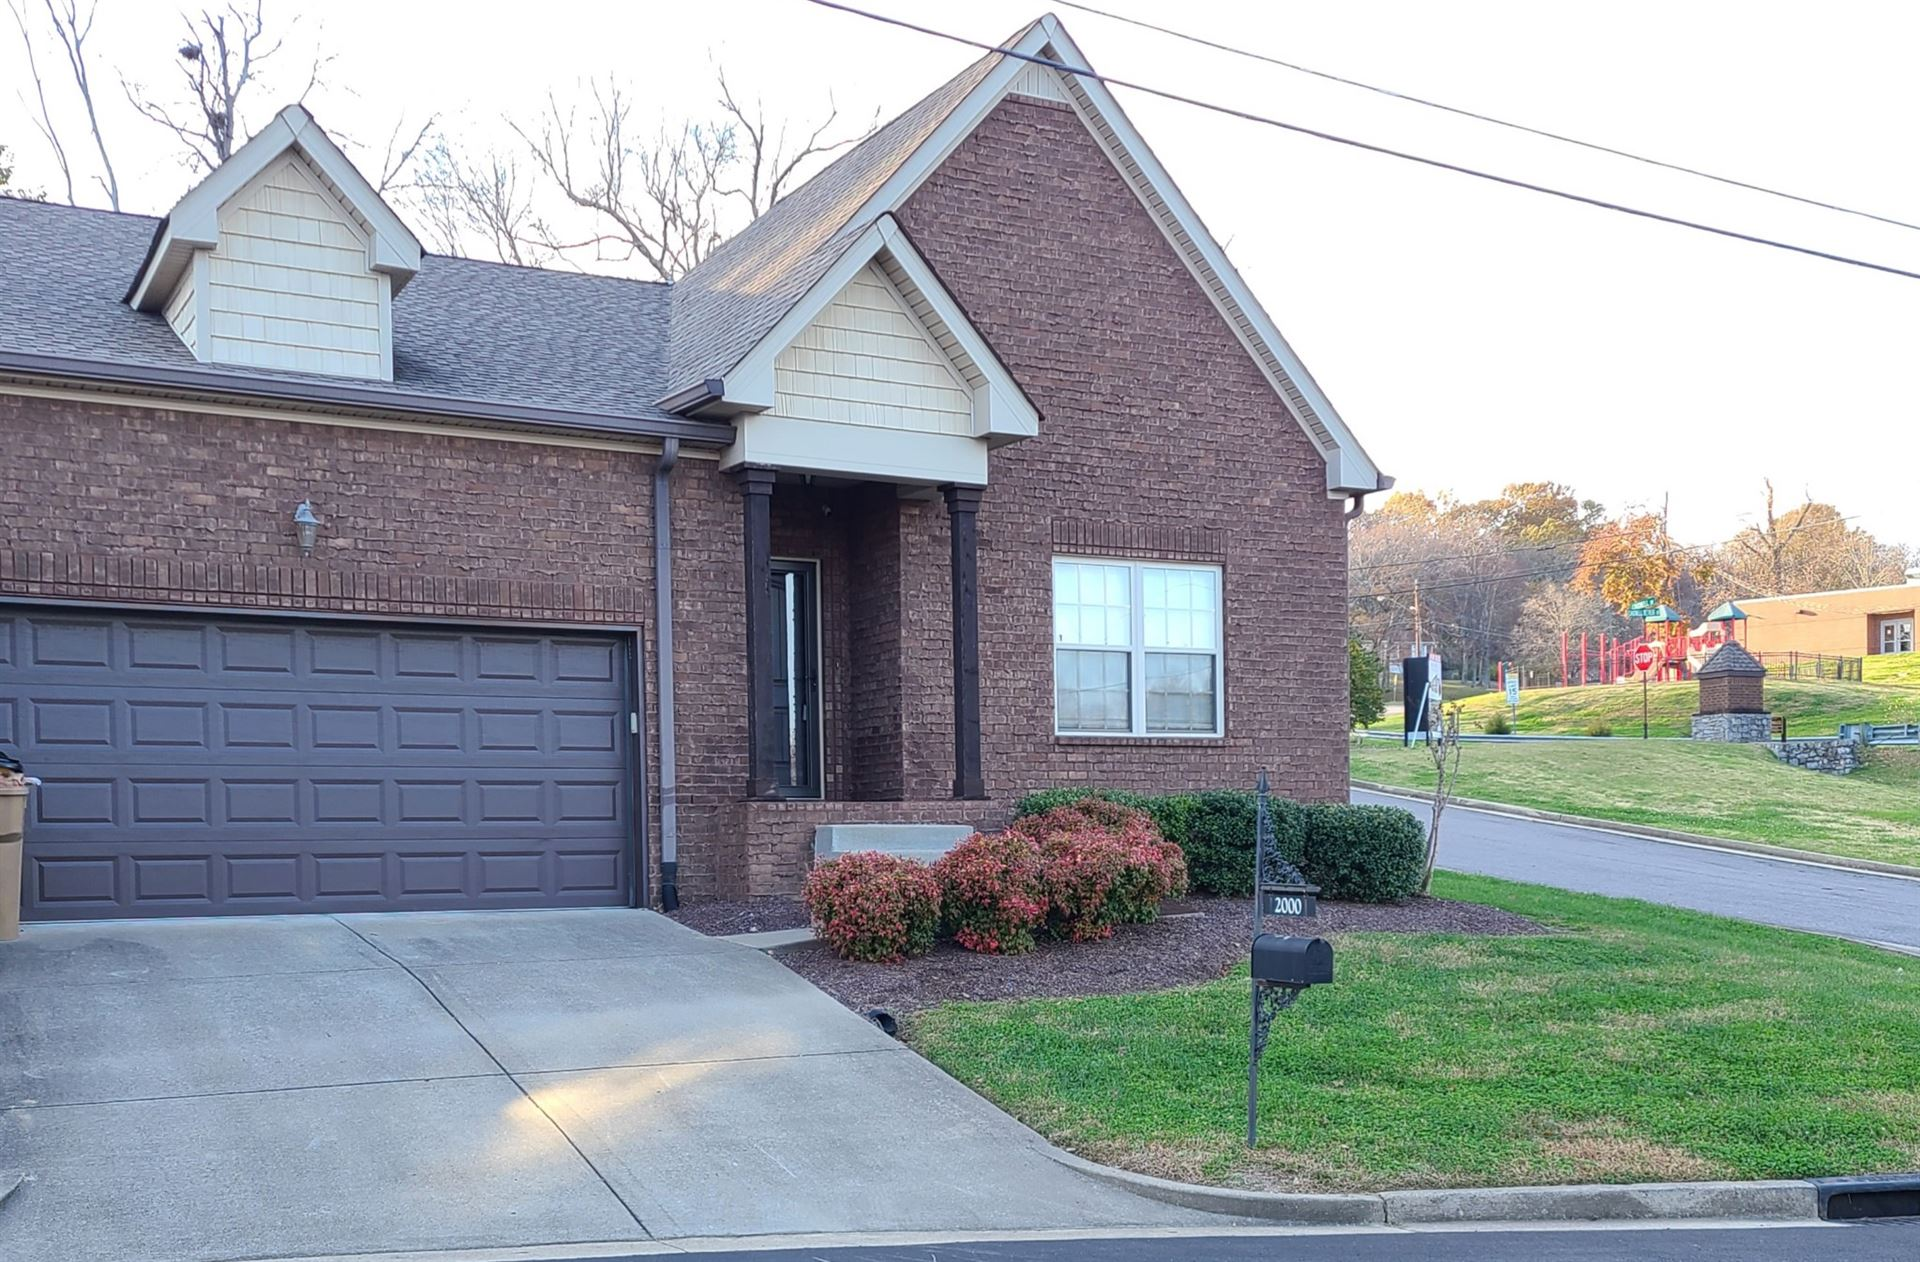 2000 Chadwell Overlook Dr, Madison, TN 37115 - MLS#: 2207312